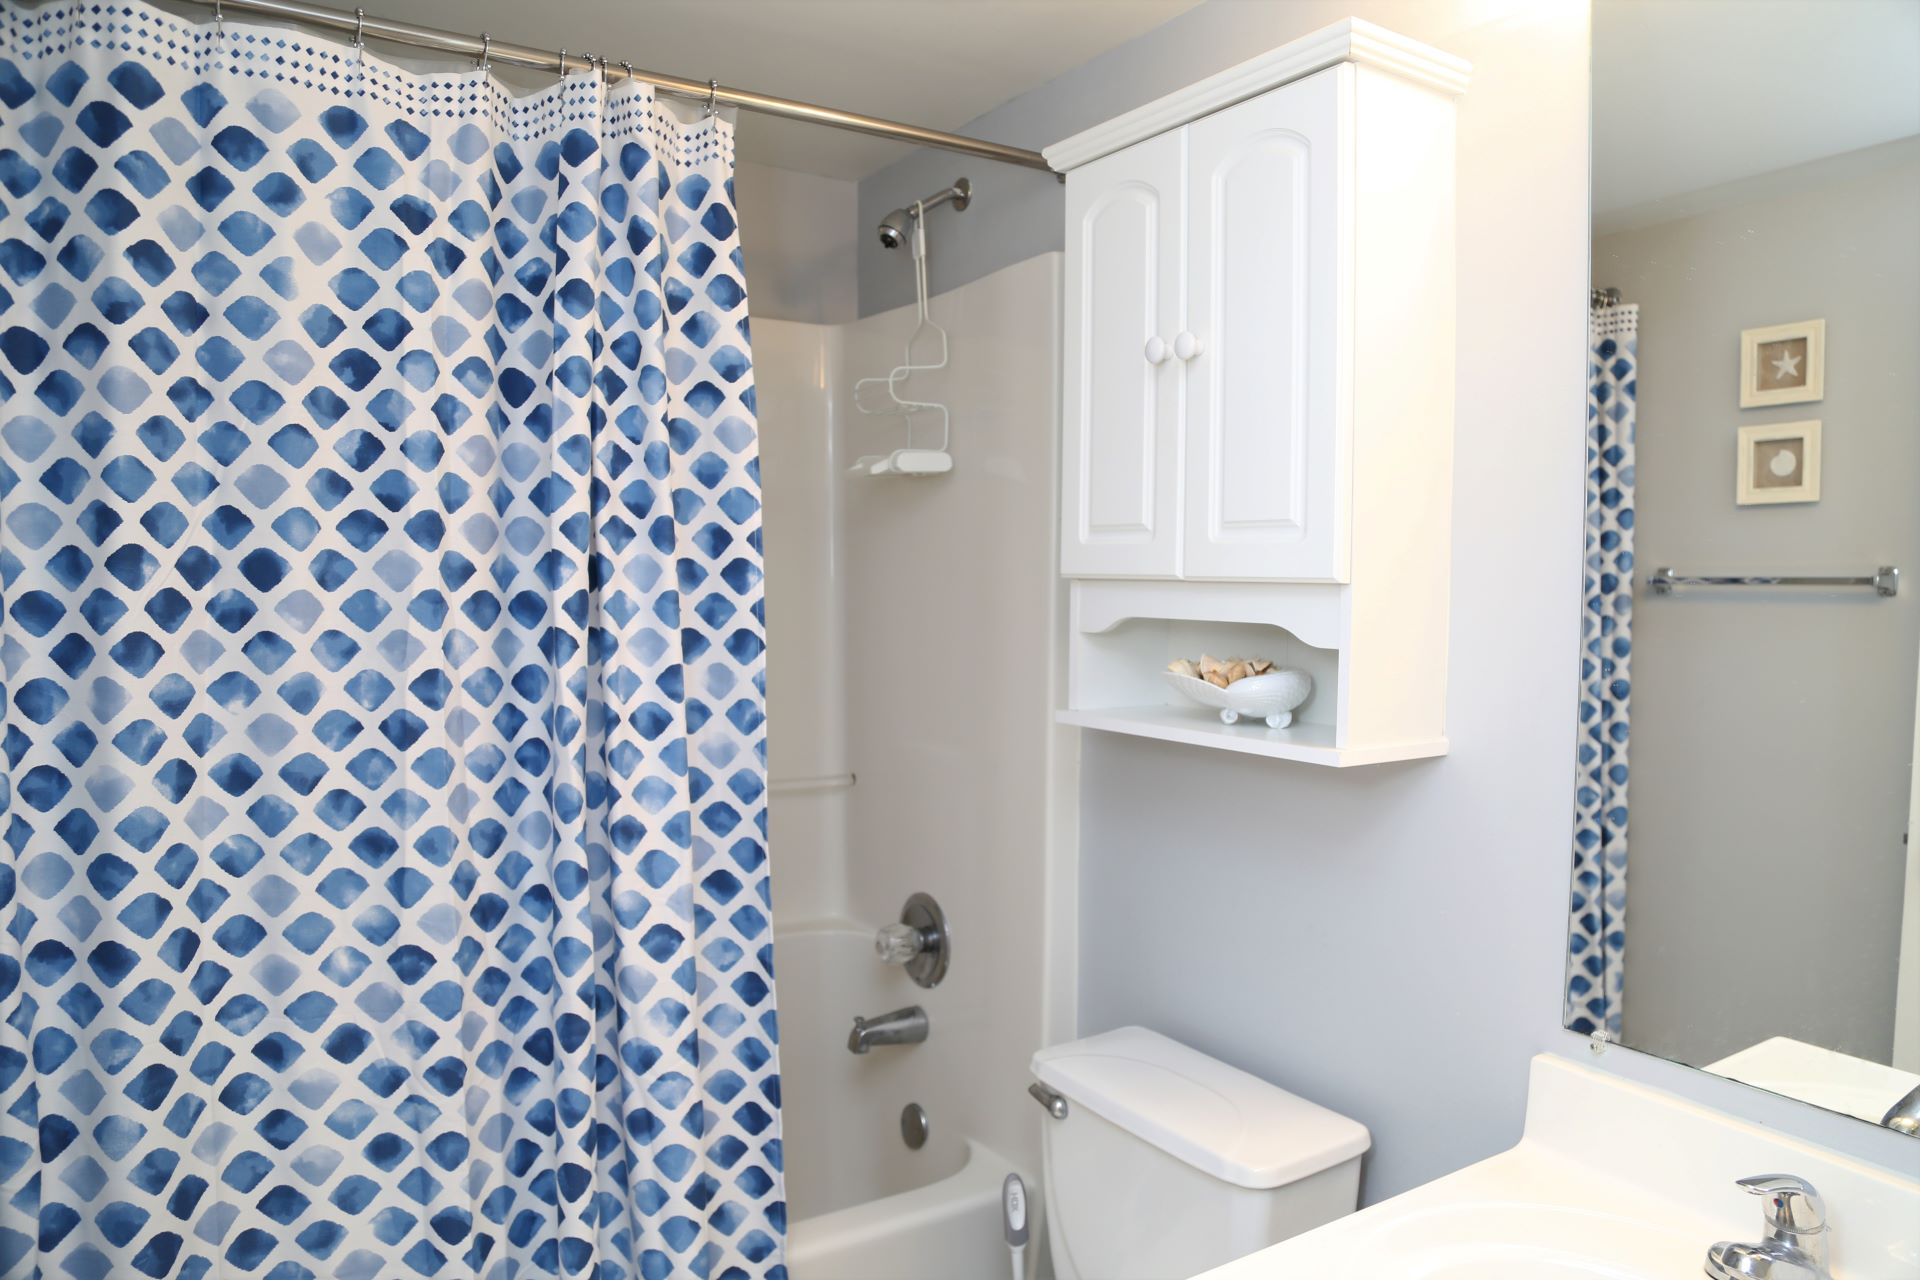 The hall bathroom includes a shower/tub combo plus a starter